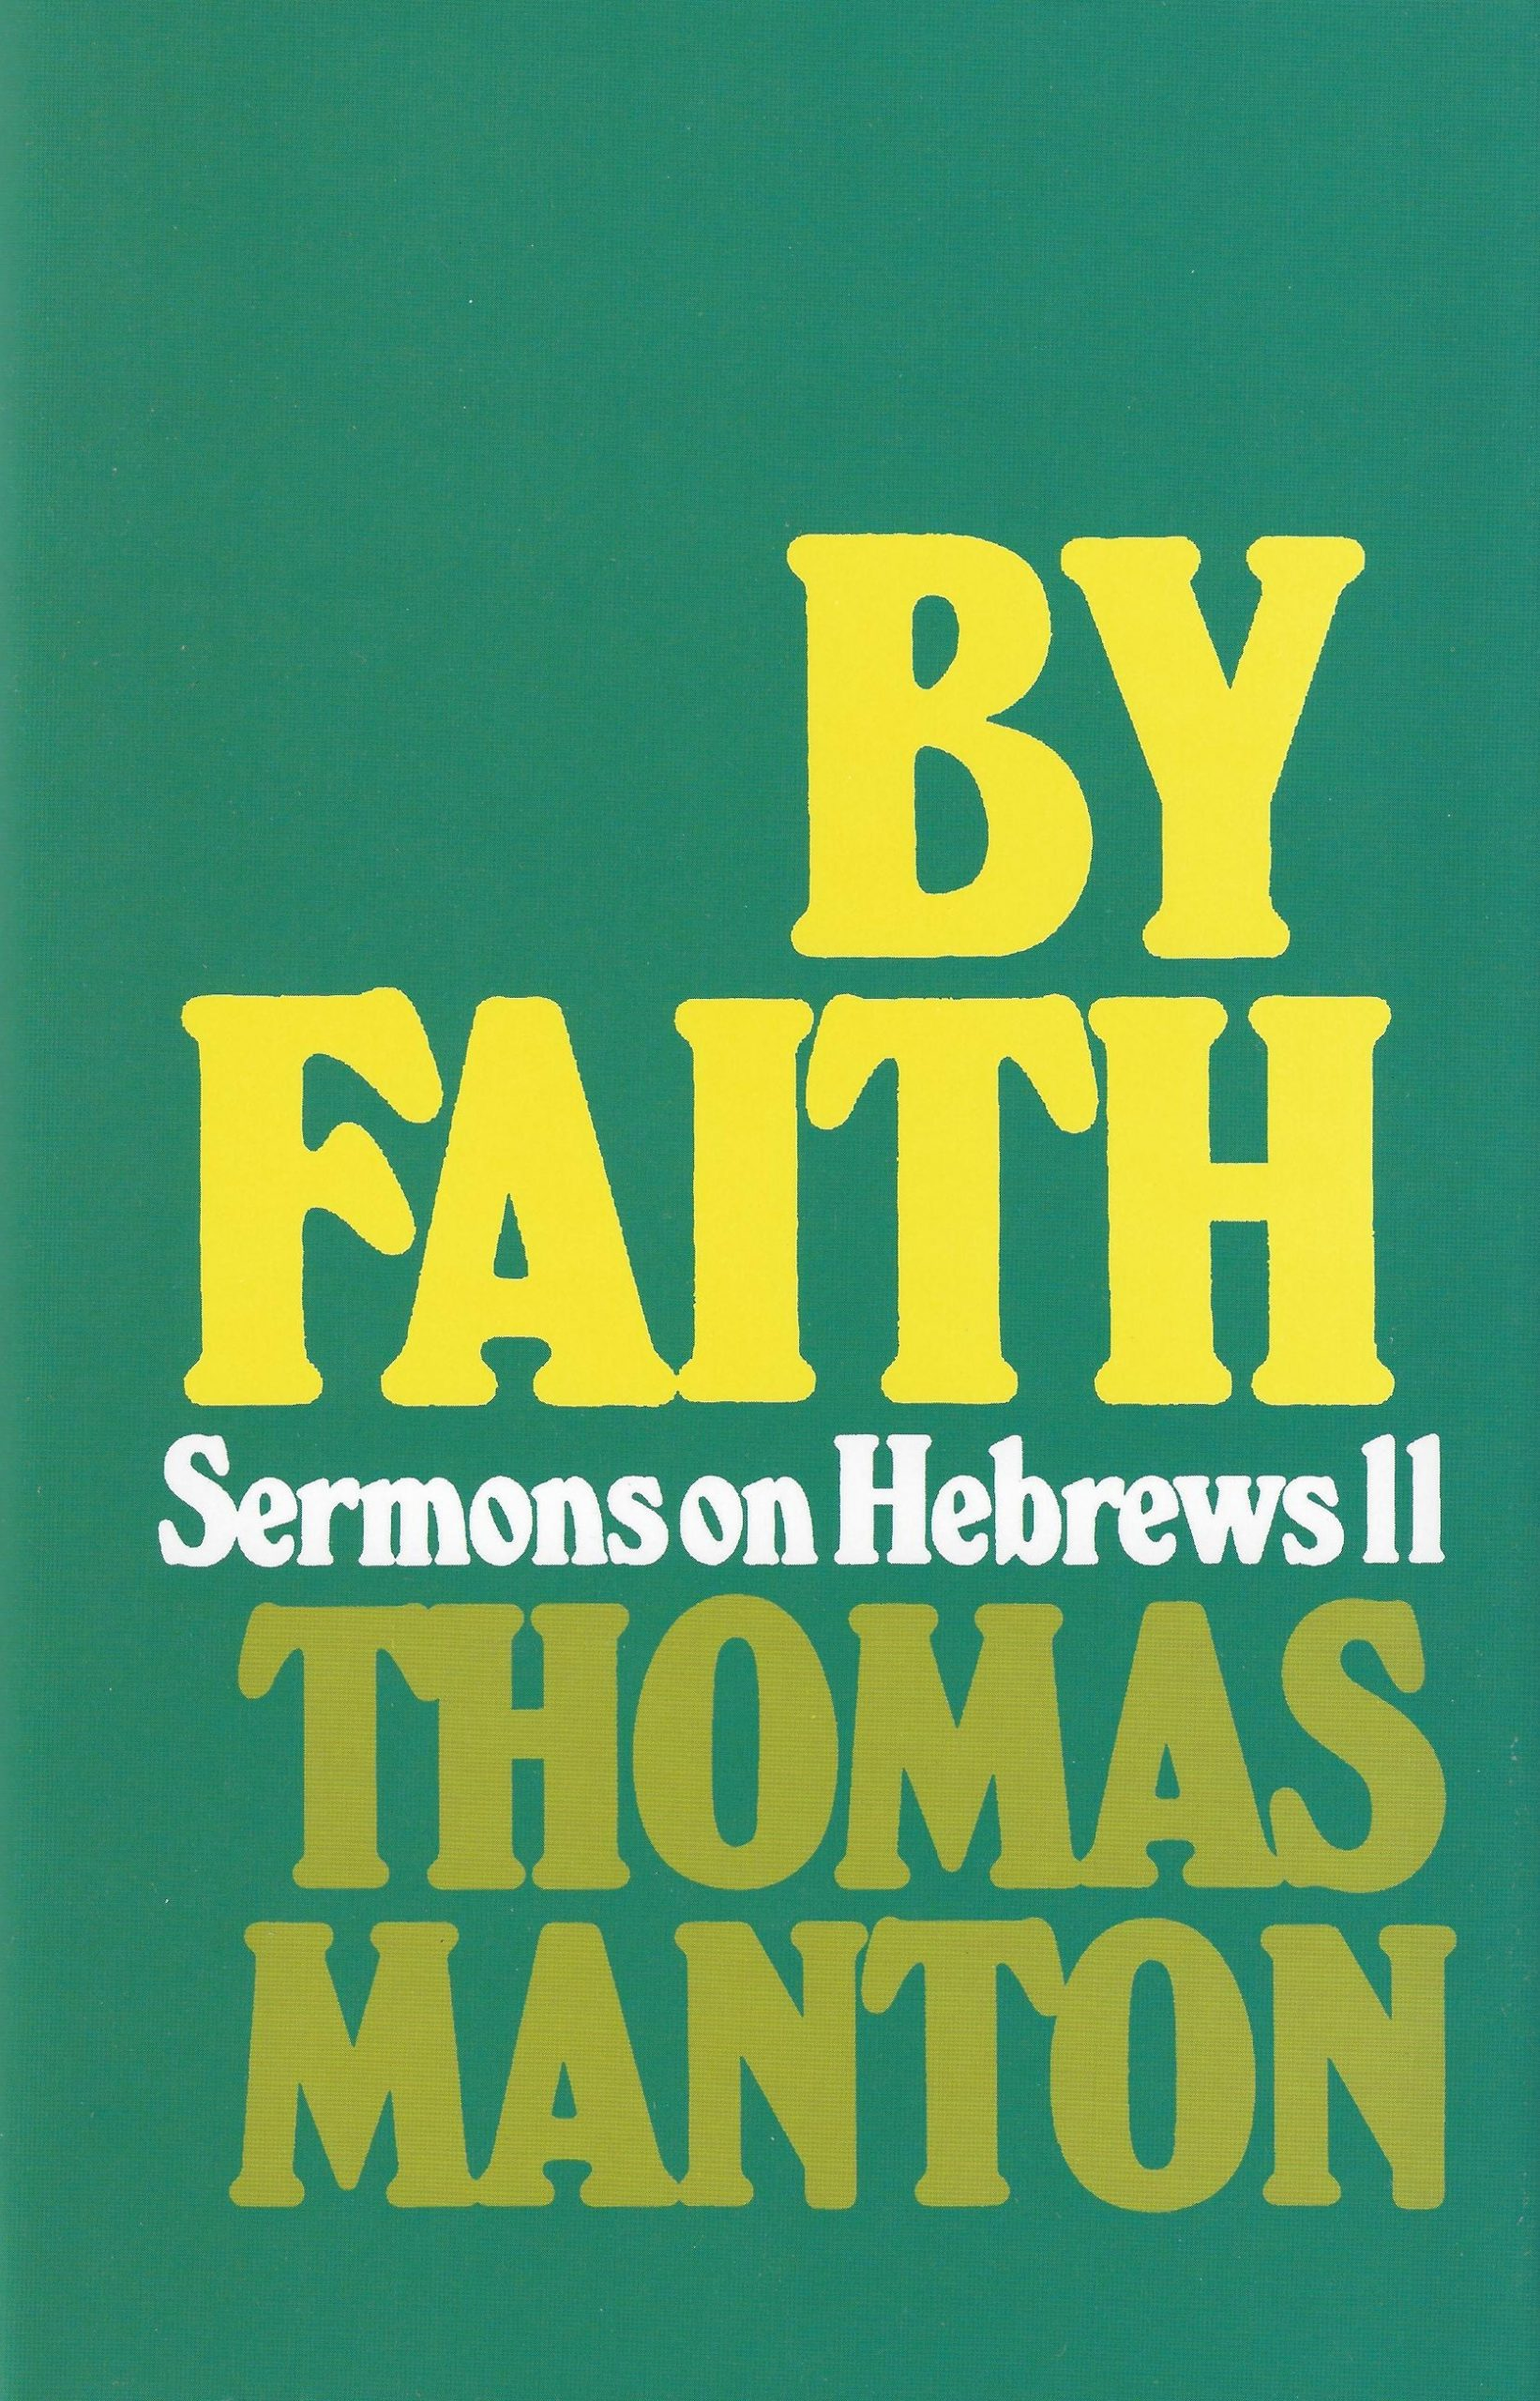 Cover image for 'By Faith' Thomas Manton